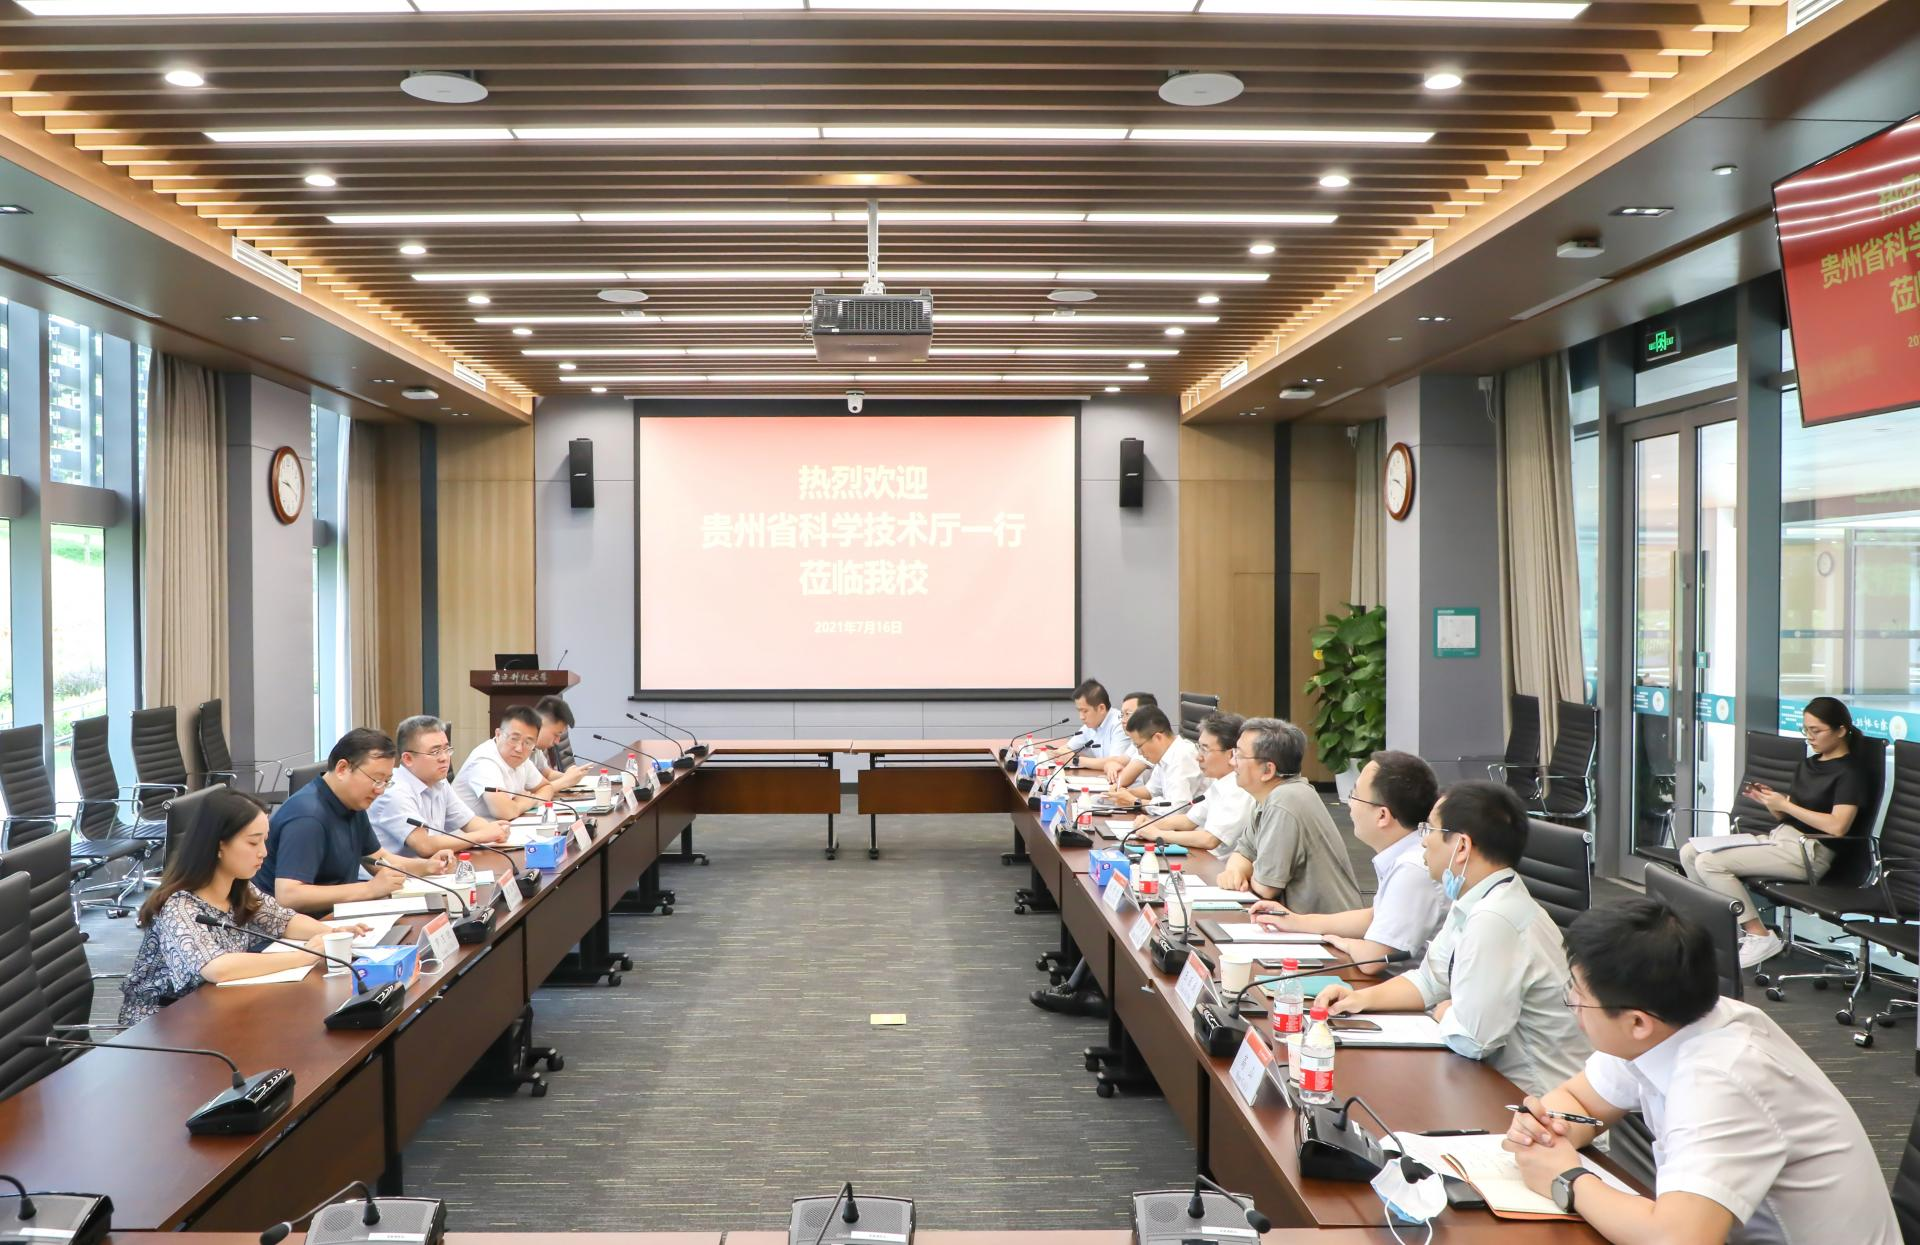 Delegation from Department of Science and Technology in Guizhou Province visits SUSTech